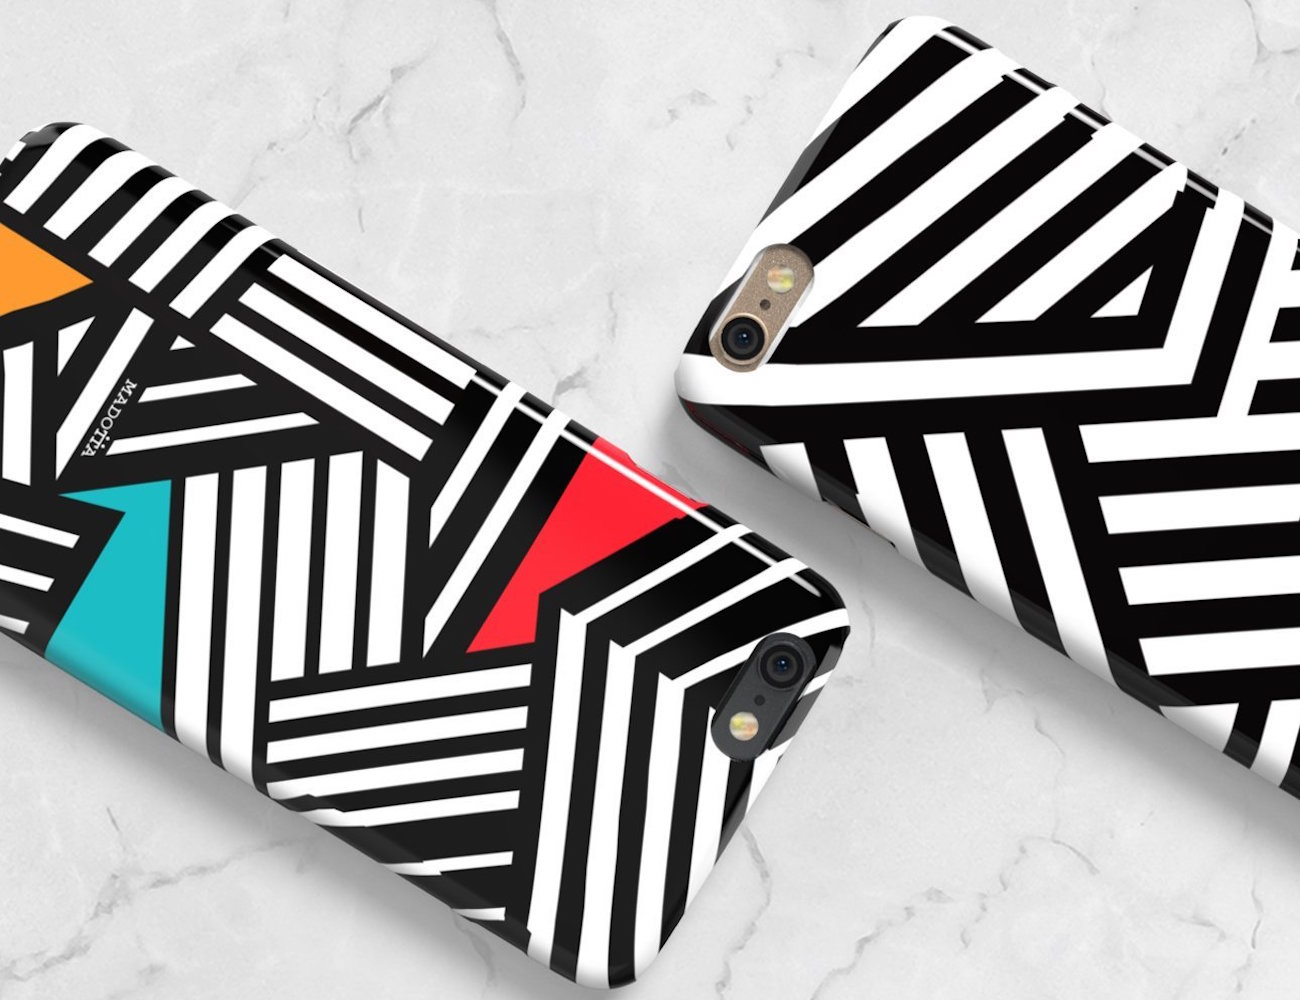 Dazzle Camouflage Phone Case by Madotta